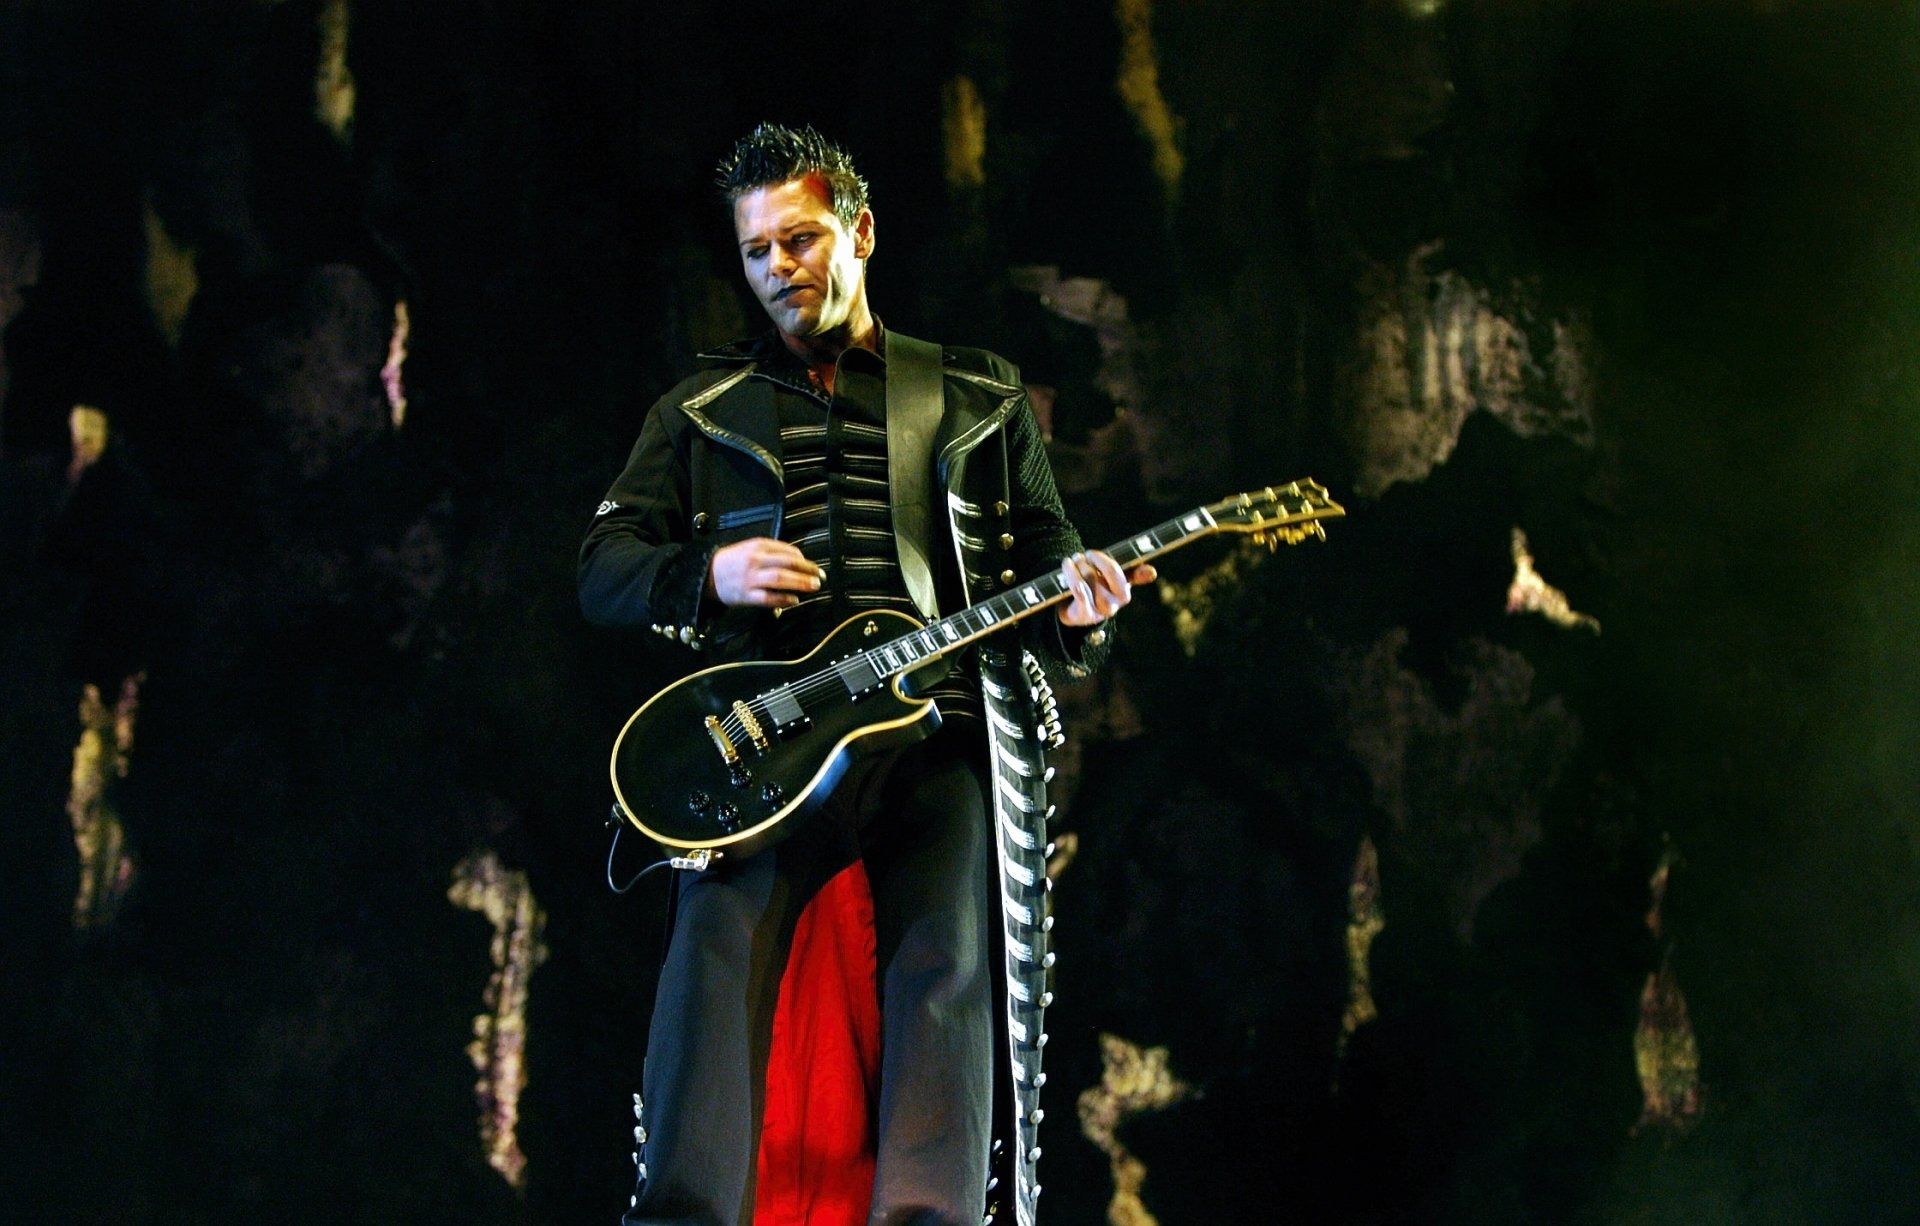 Richard z kruspe pictures